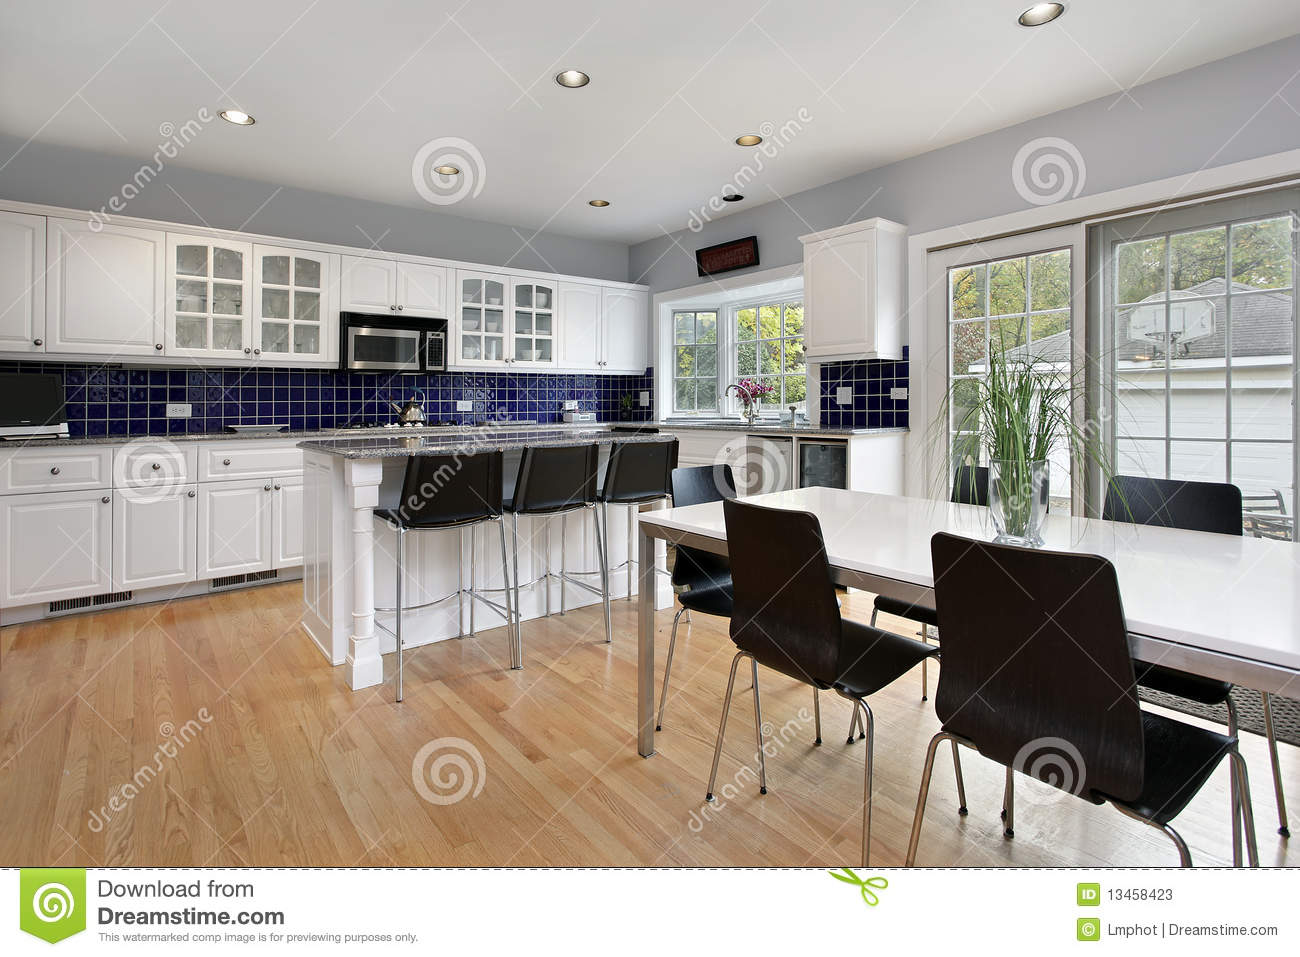 Kitchen With Blue Tile Backsplash Stock Image Image Of Luxury Appliance 13458423